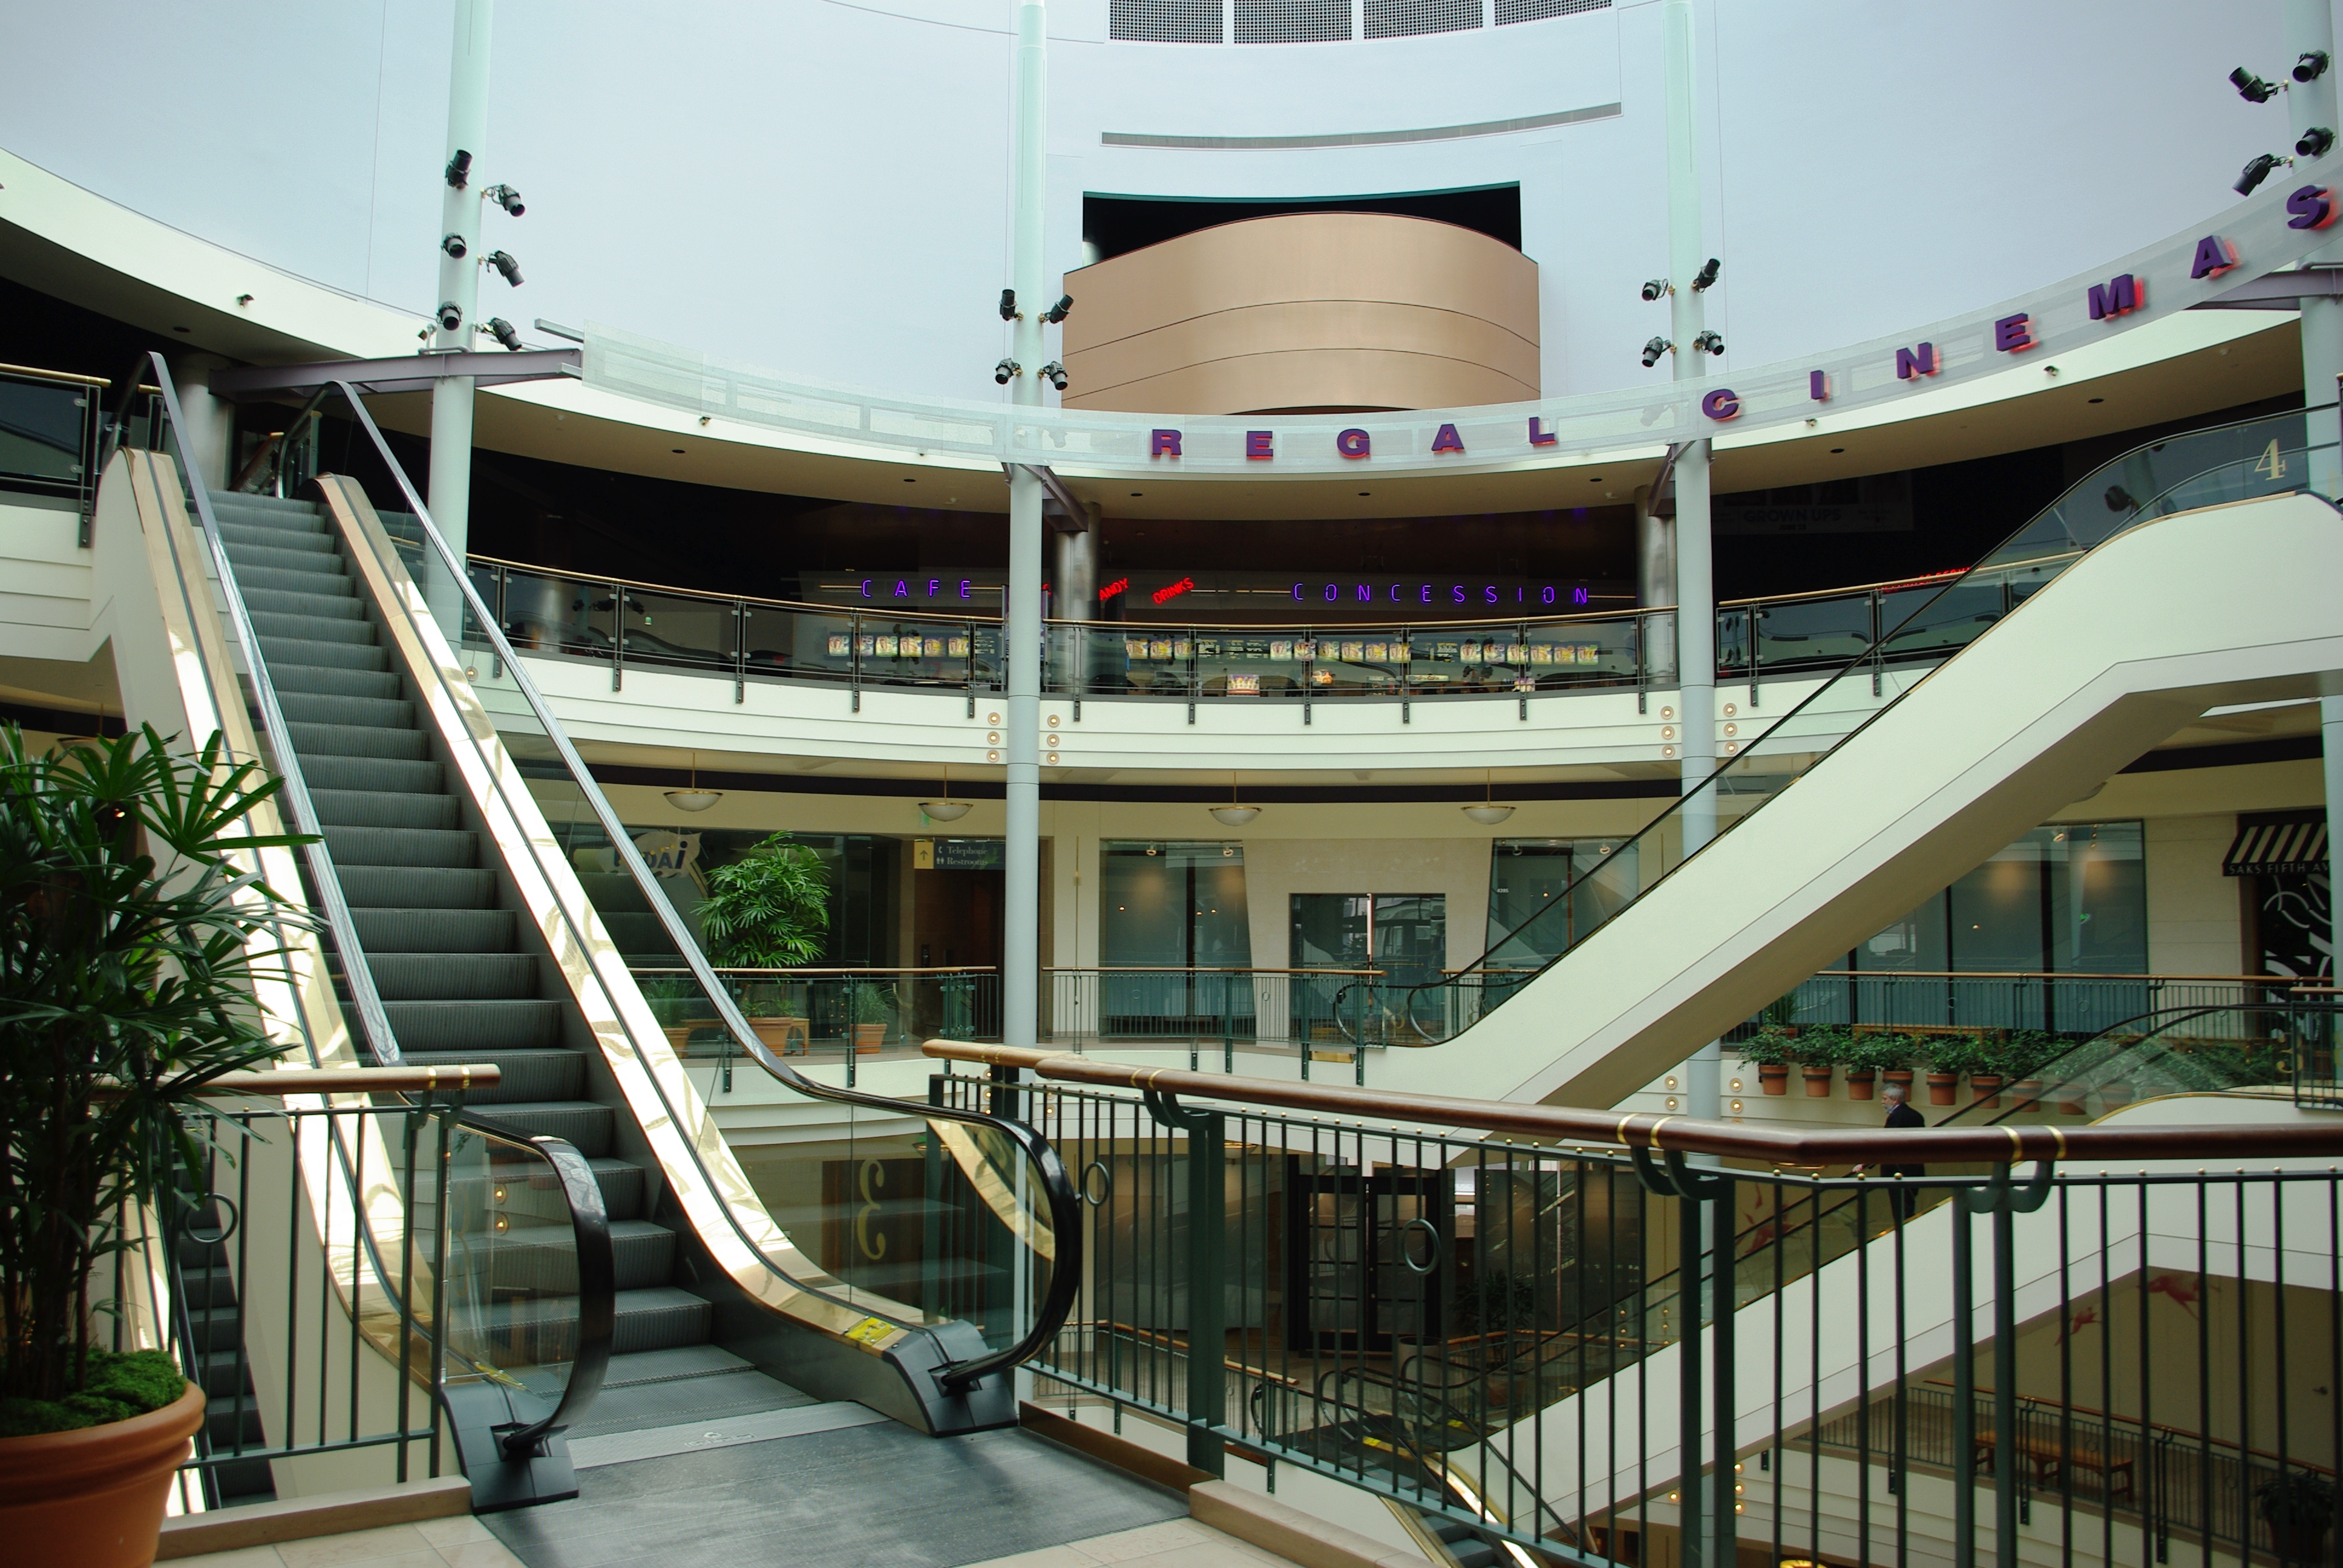 Portland tourist attractions: Cascade Station - NE Portland, OR - a shopping mall near the Portland Airport; Eastport Plaza - SE Portland, OR - mall providing numerous shops and services.